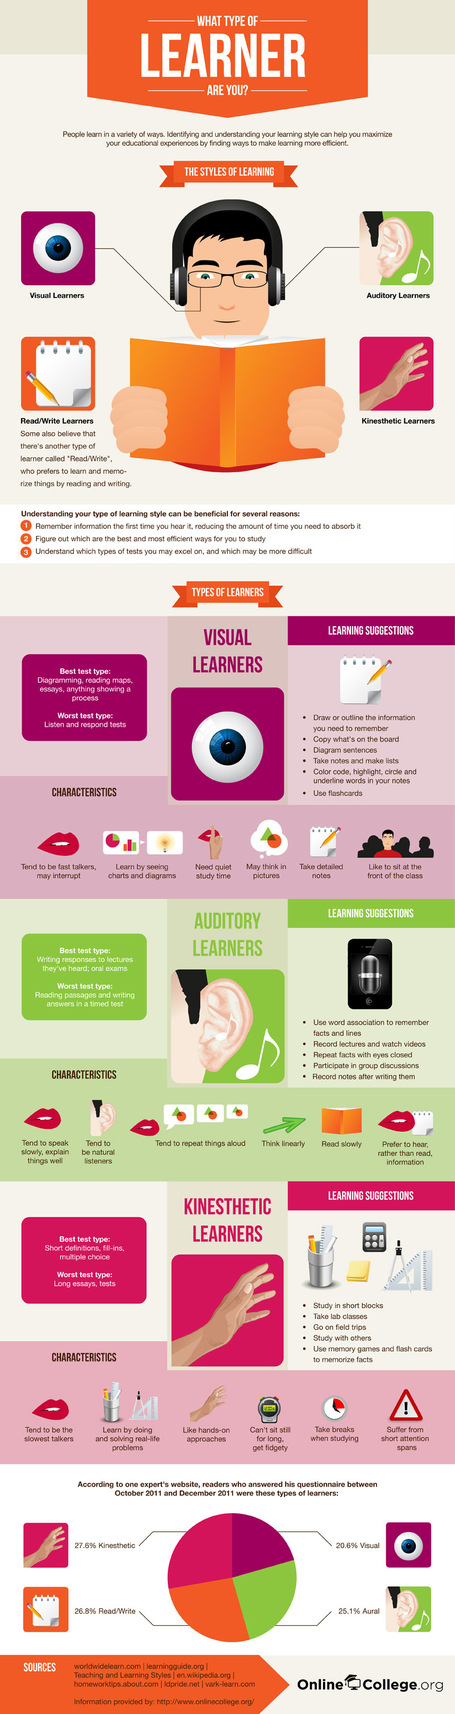 What Type of Learner Are You? [Infographic] | Learning theories & Educational Resources תיאוריות למידה וחומרי הוראה | Scoop.it